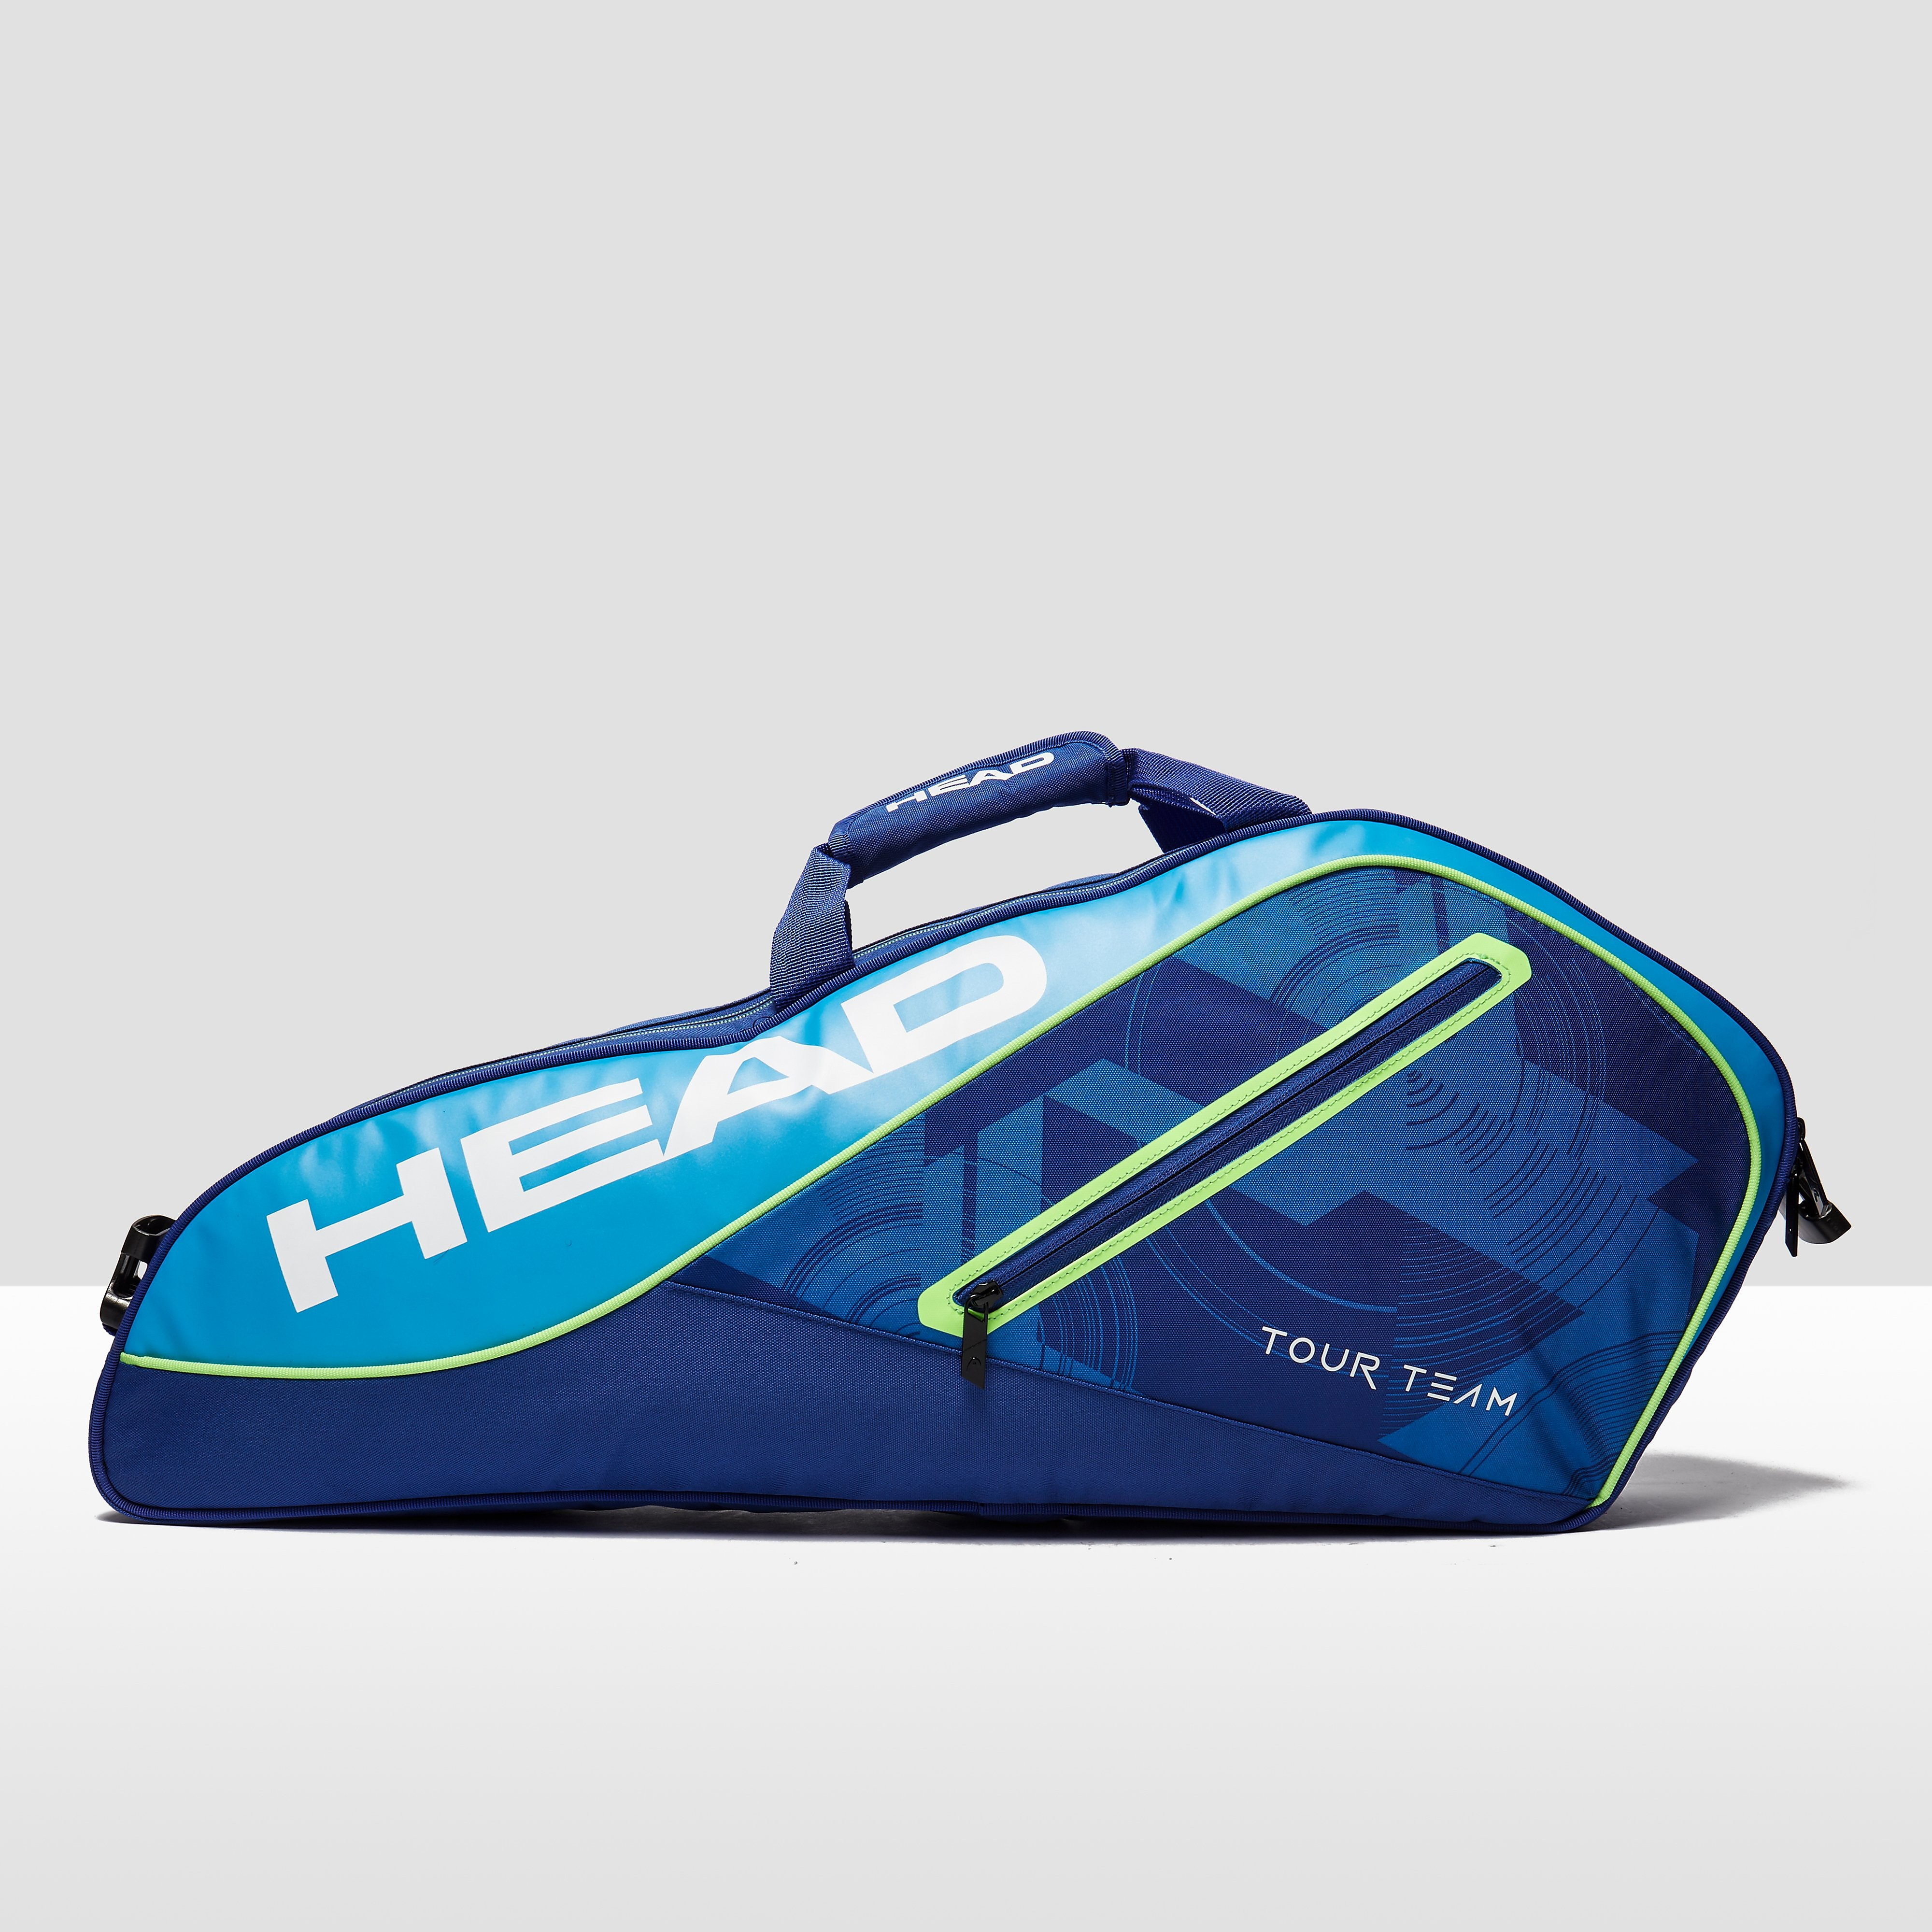 Head Tour Team 3R Pro Racket Bag